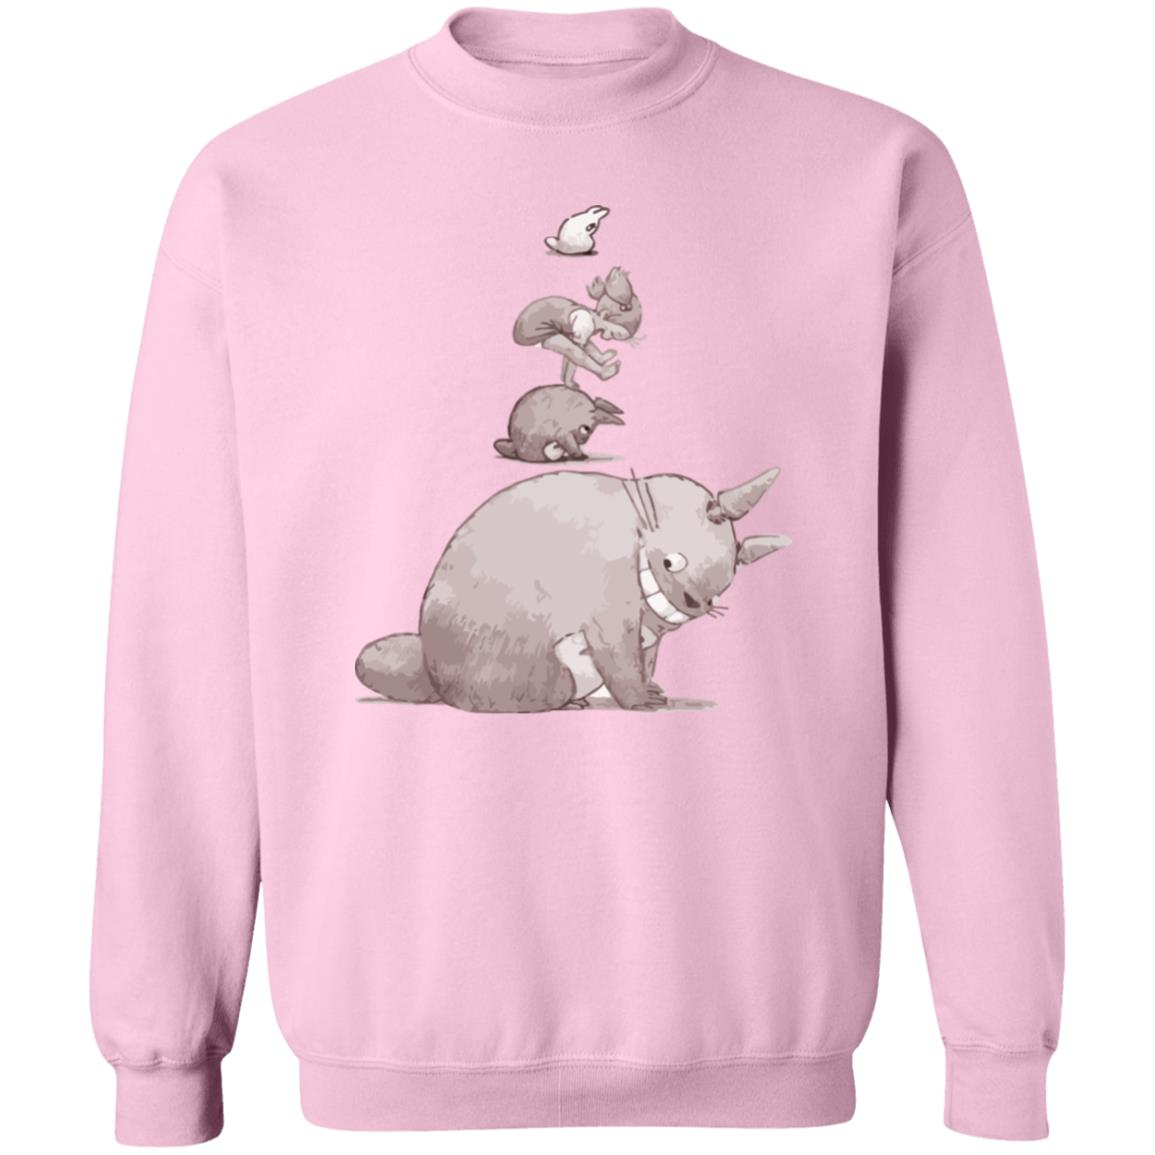 Totoro – Jump over the cow playing Sweatshirt